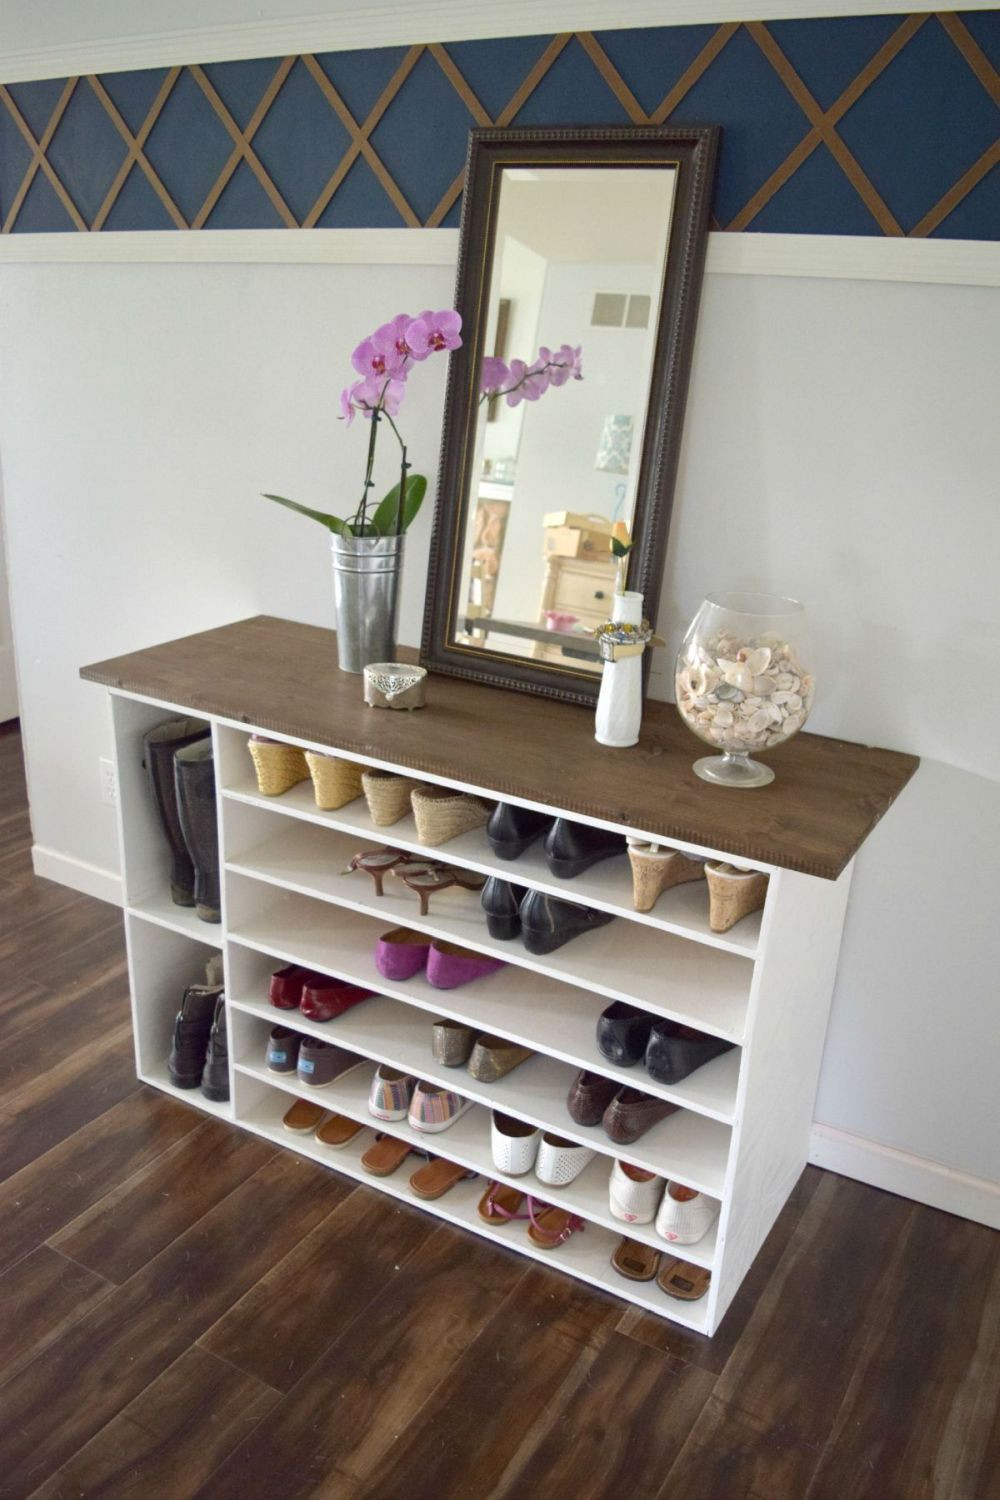 DIY Shoe Organizer Ideas  10 DIY Shoe Rack Ideas For The Perfect Entryway Makeover